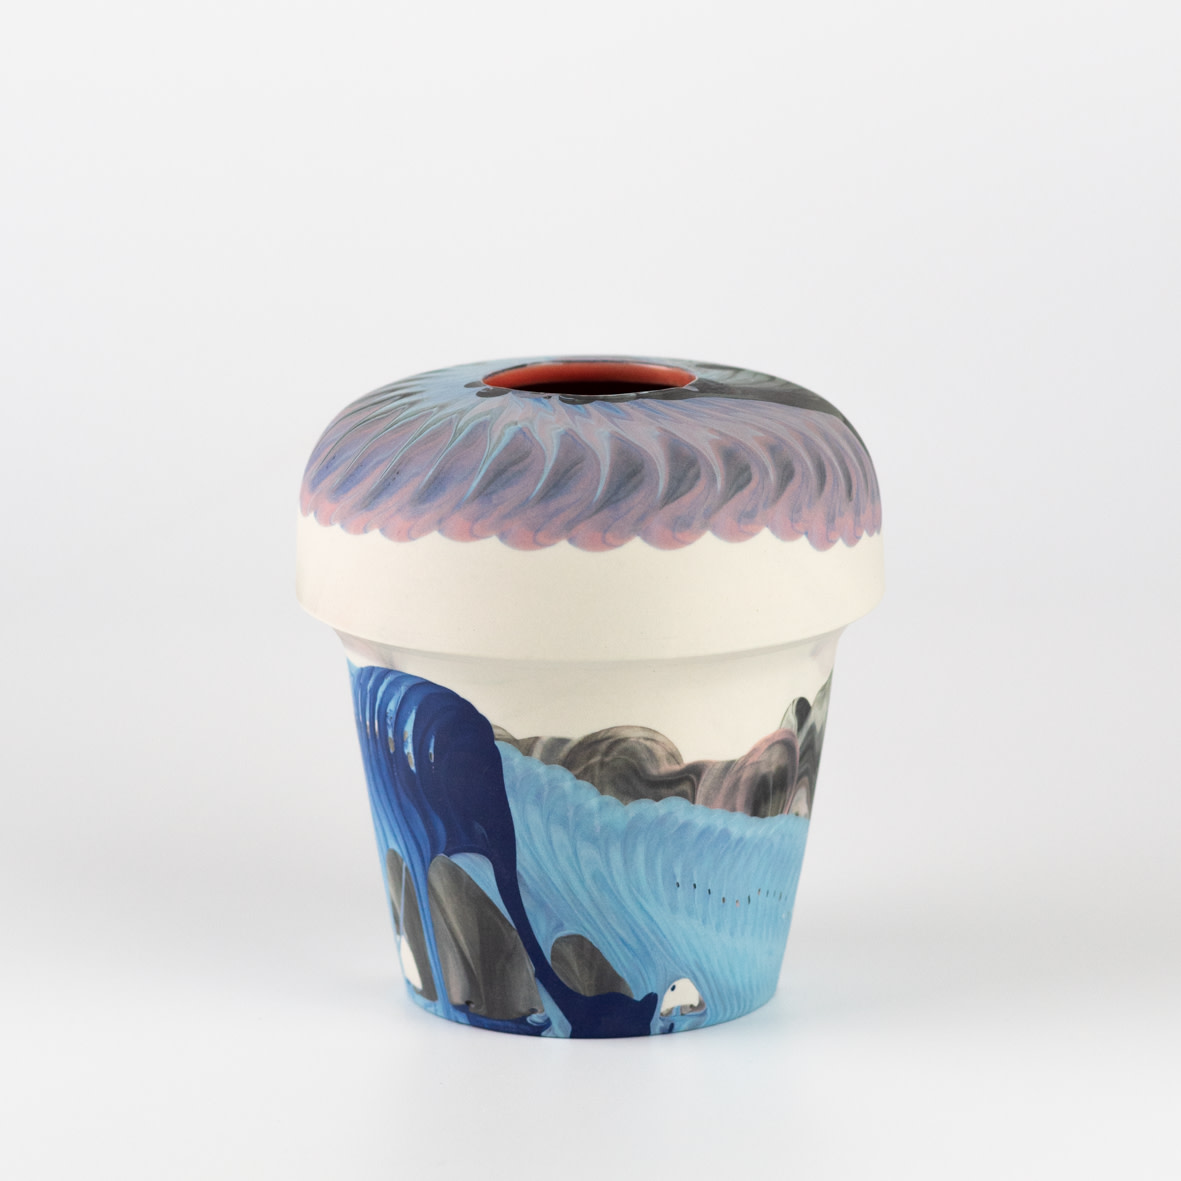 "<span class=""link fancybox-details-link""><a href=""/artists/219-james-pegg/works/6574-james-pegg-kontohondros-vase-2019/"">View Detail Page</a></span><div class=""artist""><strong>James Pegg</strong></div> <div class=""title""><em>Kontohondros Vase</em>, 2019</div> <div class=""medium"">action-cast stained porcelain with glazed interior</div><div class=""price"">£155.00</div><div class=""copyright_line"">OwnArt: £ 15.50 x 10 months, 0% APR</div>"